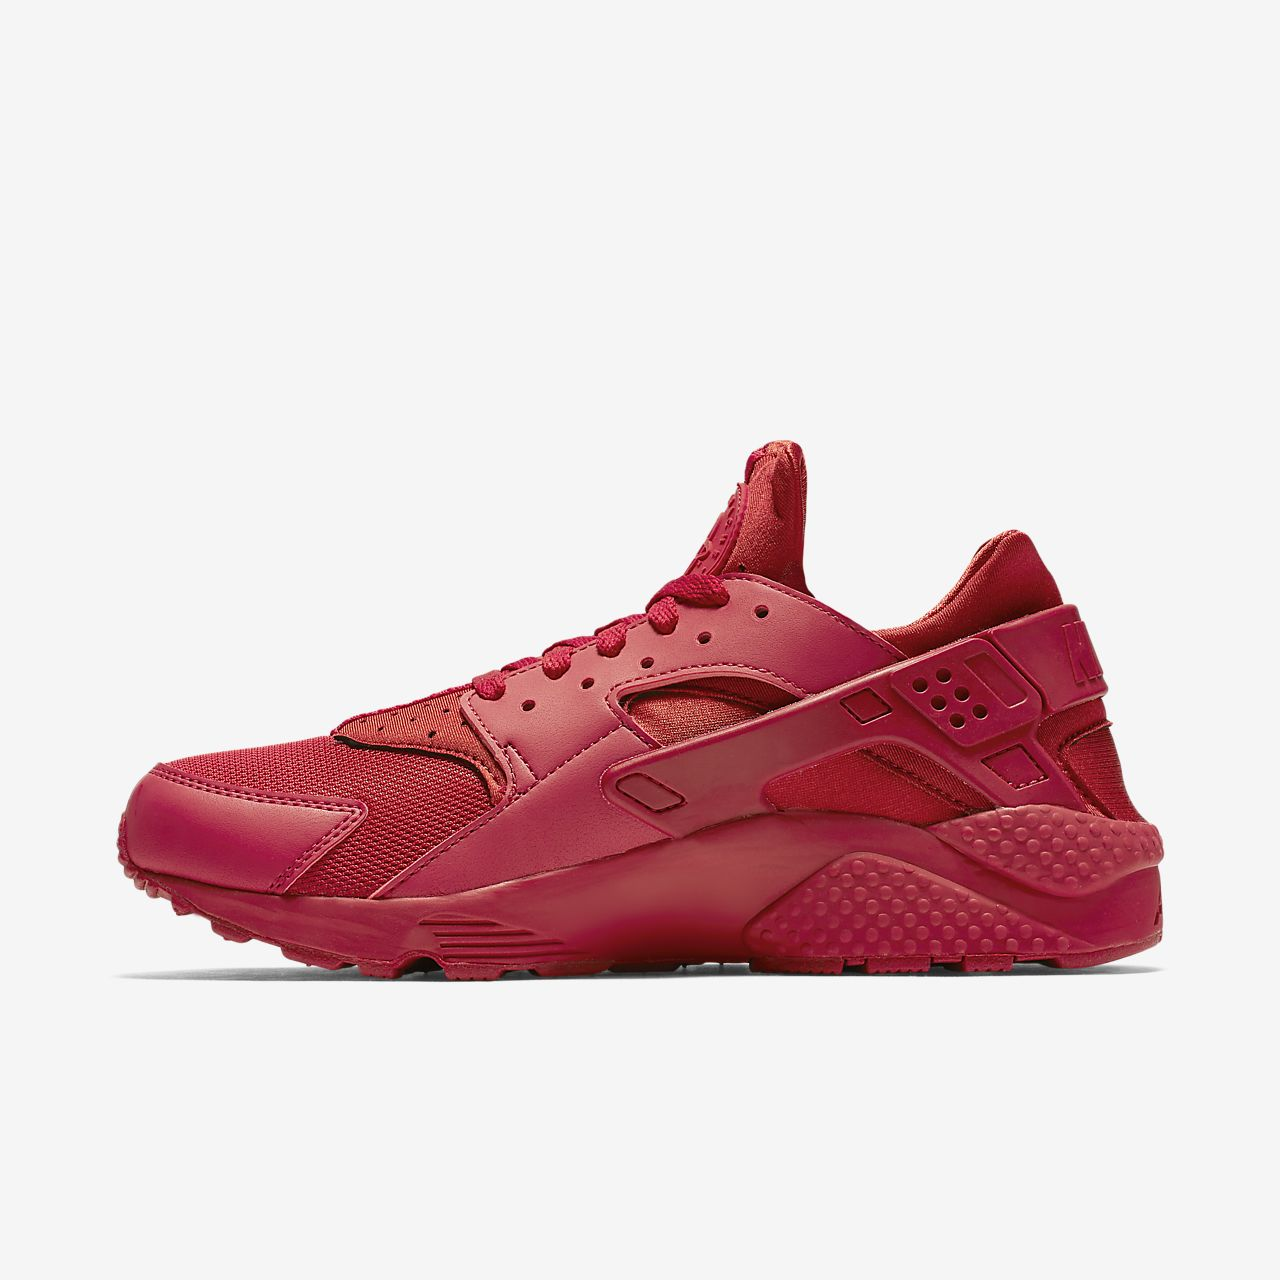 a91541c0f9d90 Nike Air Huarache Men s Shoe. Nike.com